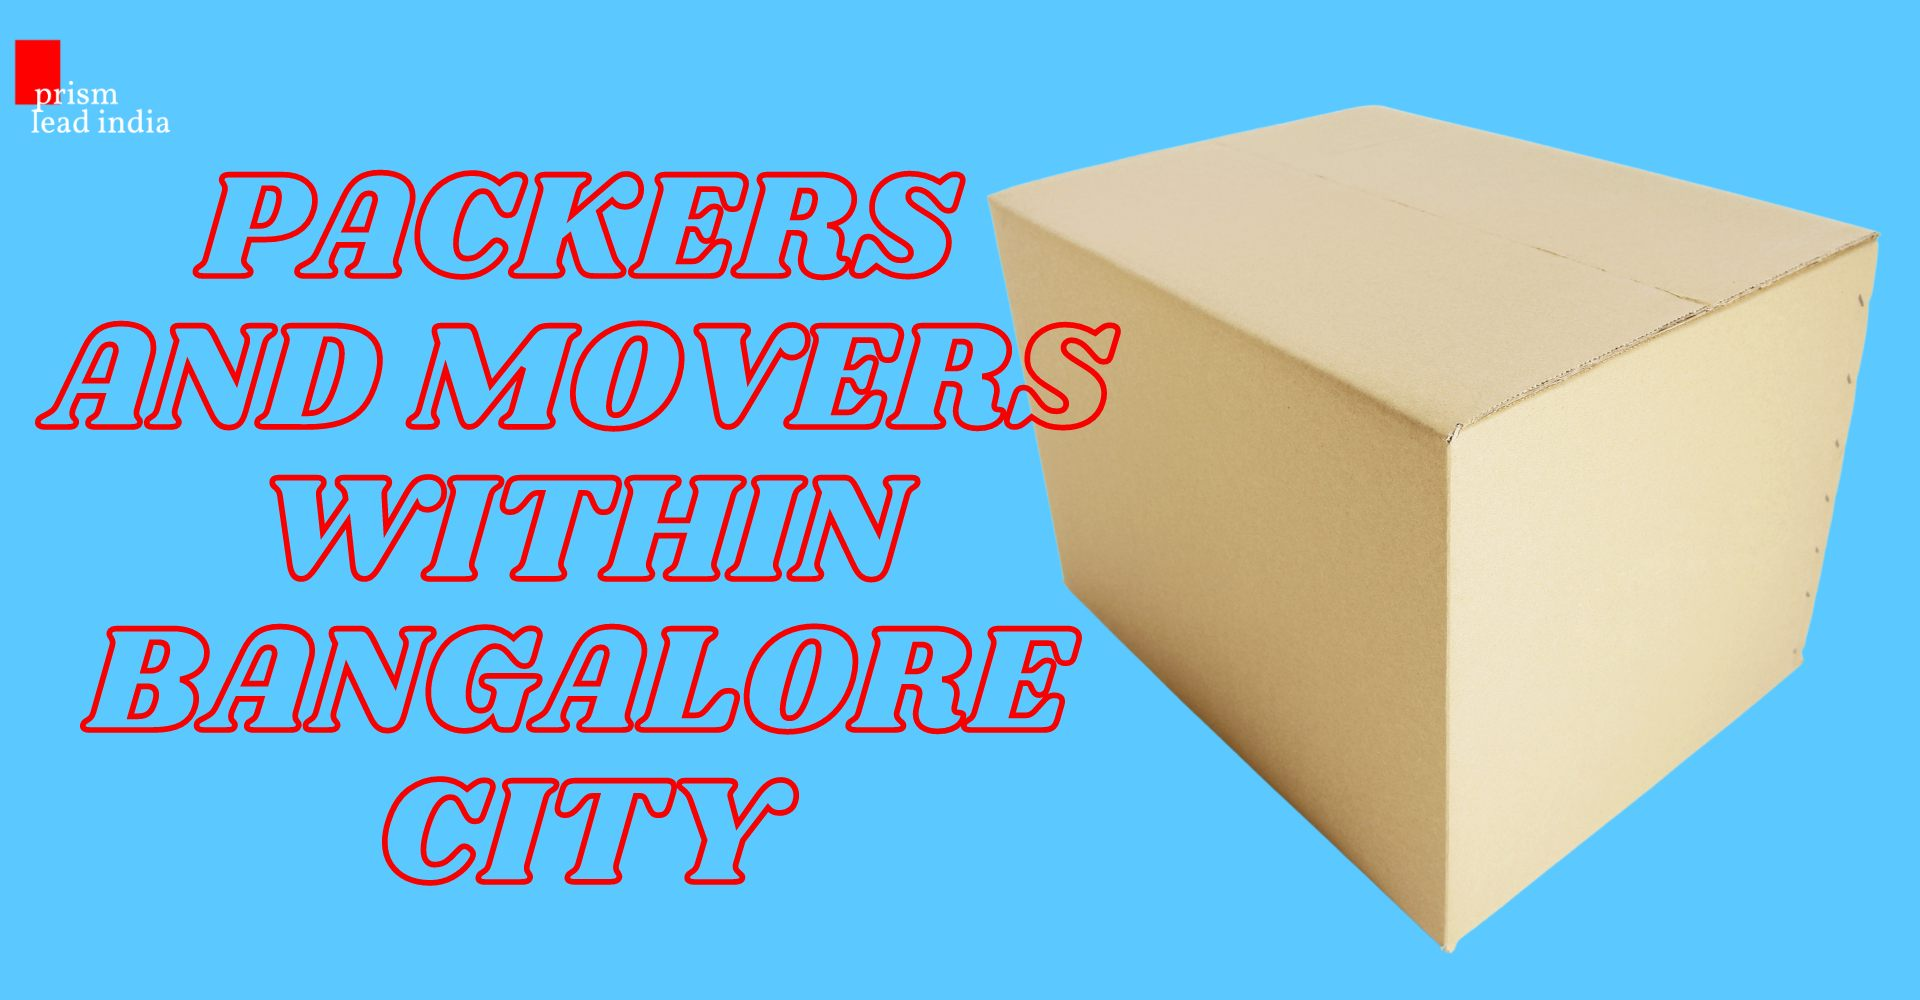 Packers and Movers within Bangalore City